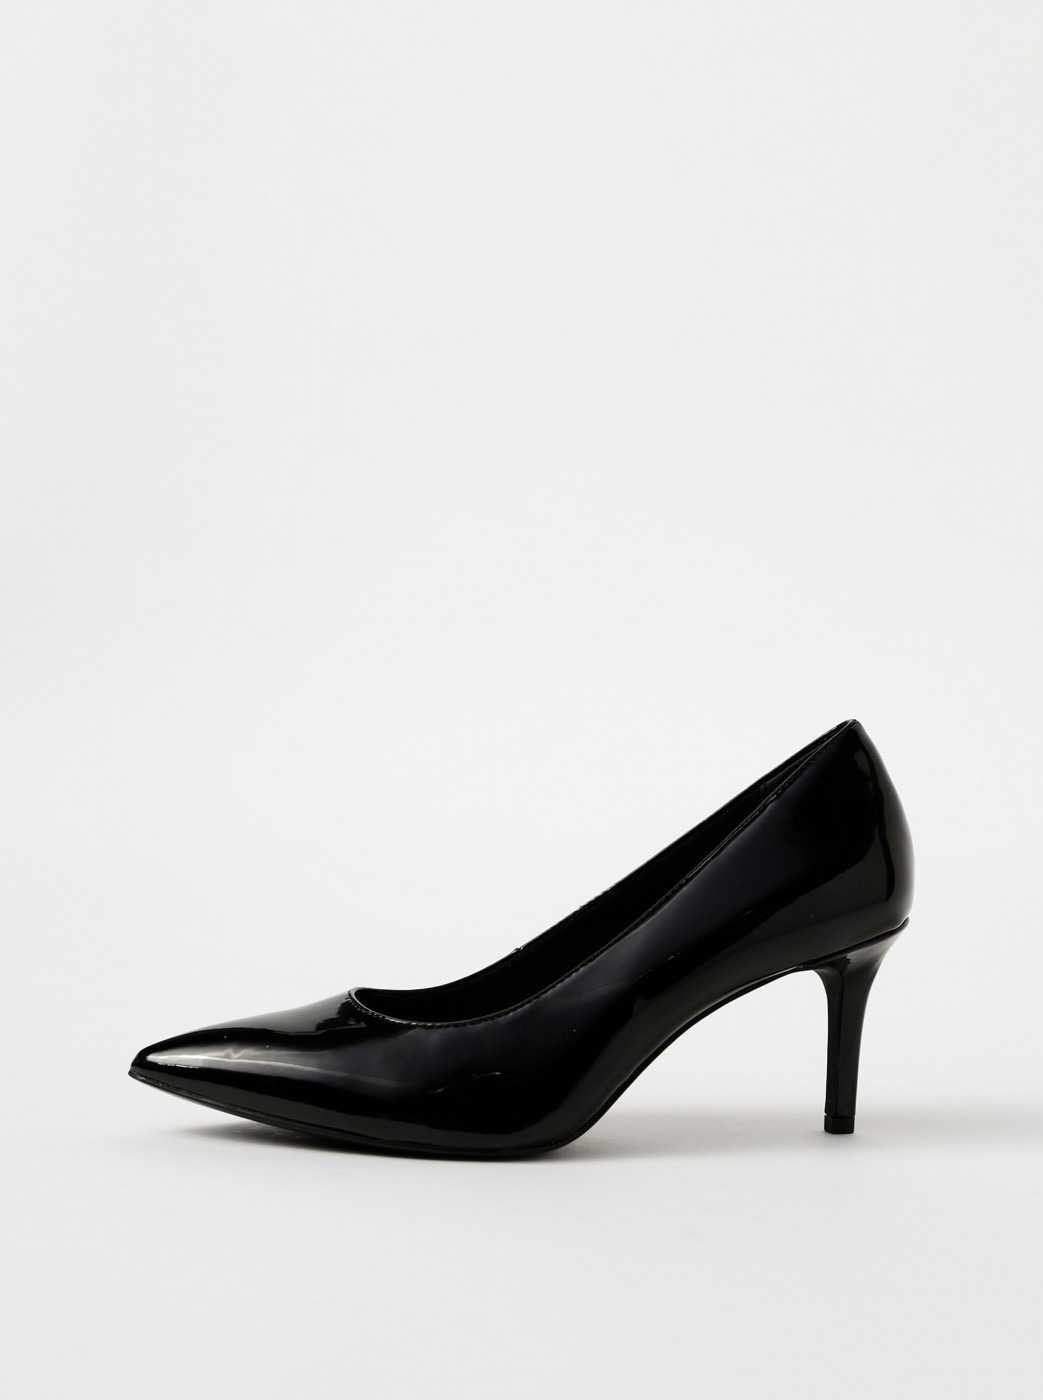 Tamaris Black Shiny Pumps